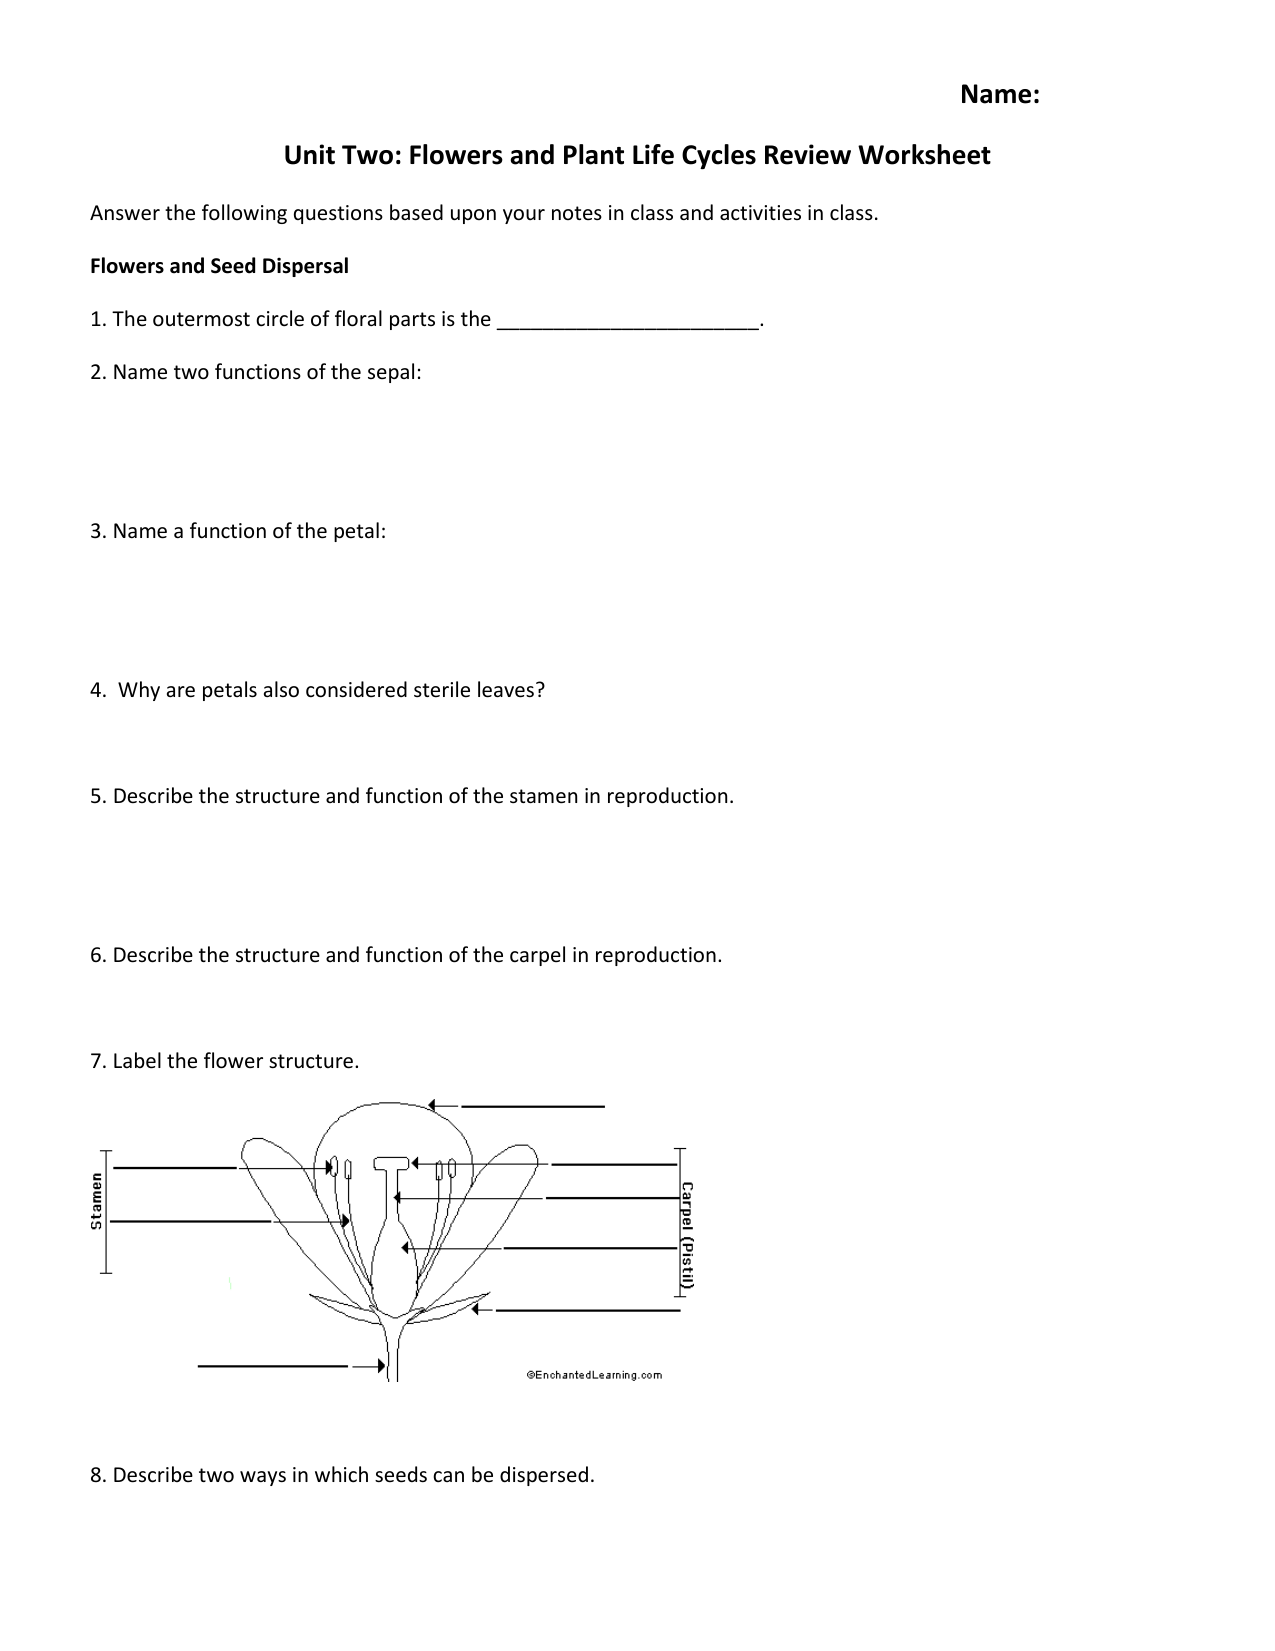 Name Unit Two Flowers And Plant Life Cycles Review Worksheet